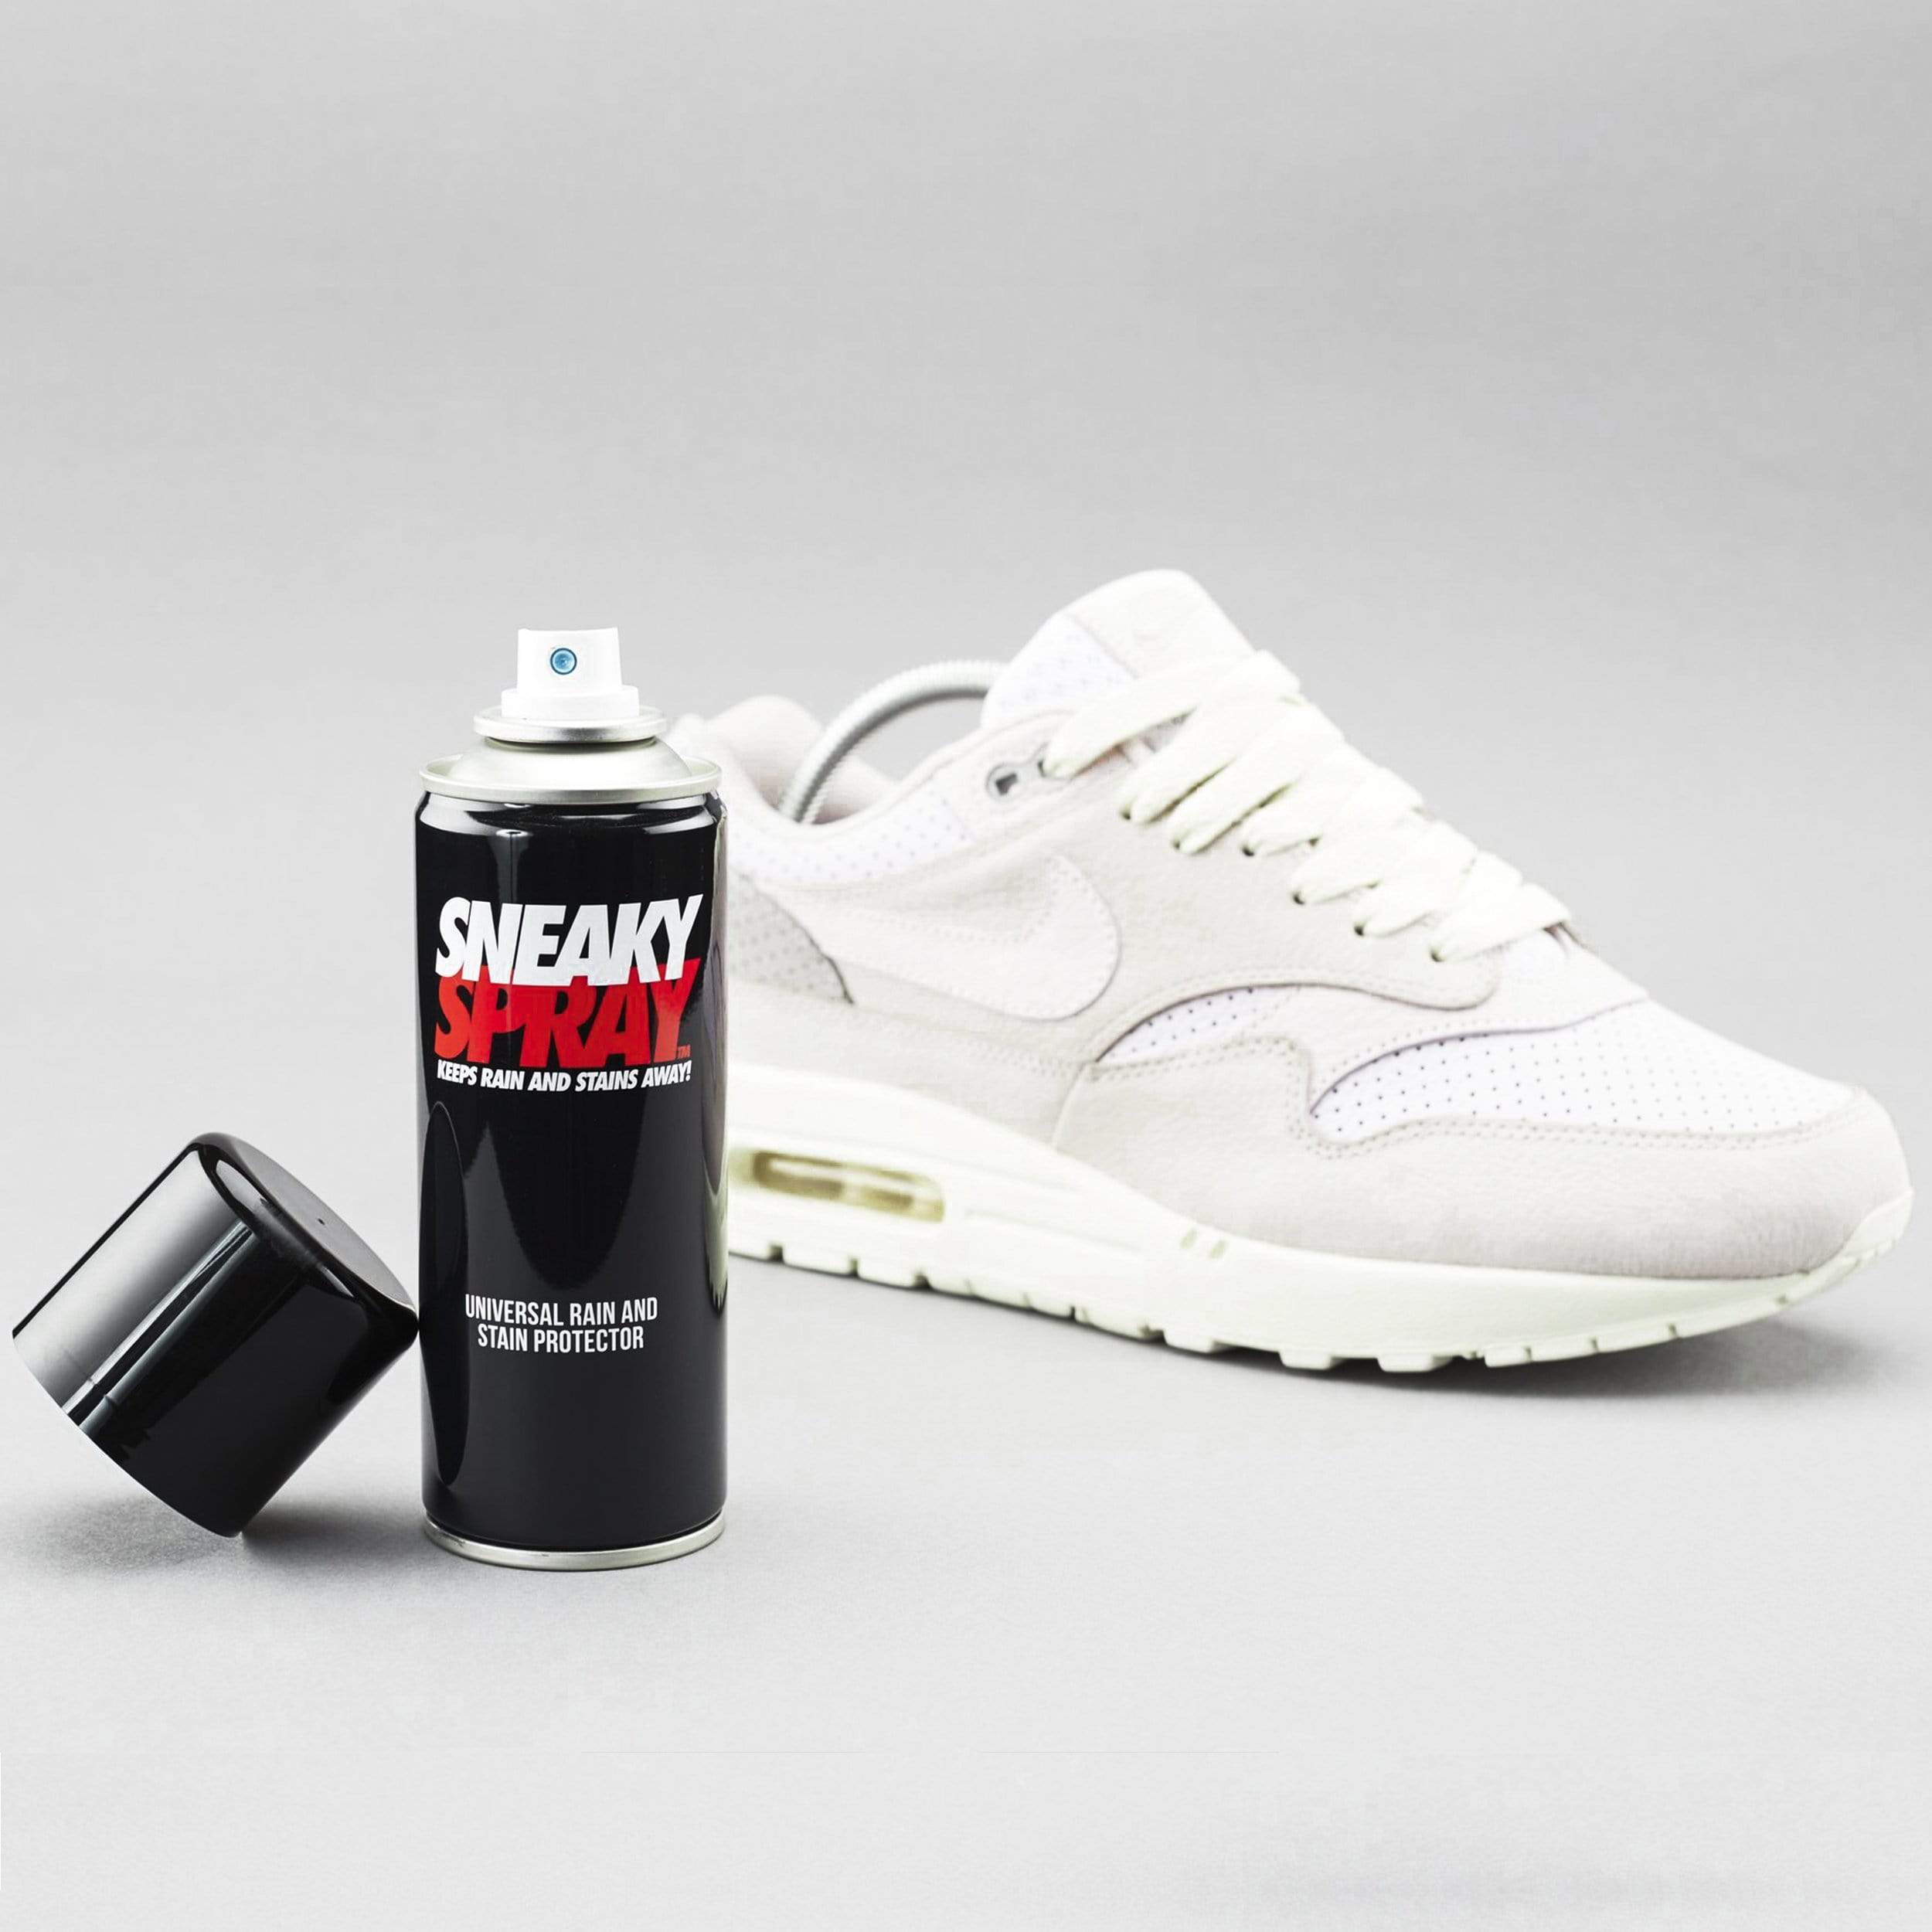 Sneaky Spray - Protector and Waterproof Spray - Kick Game